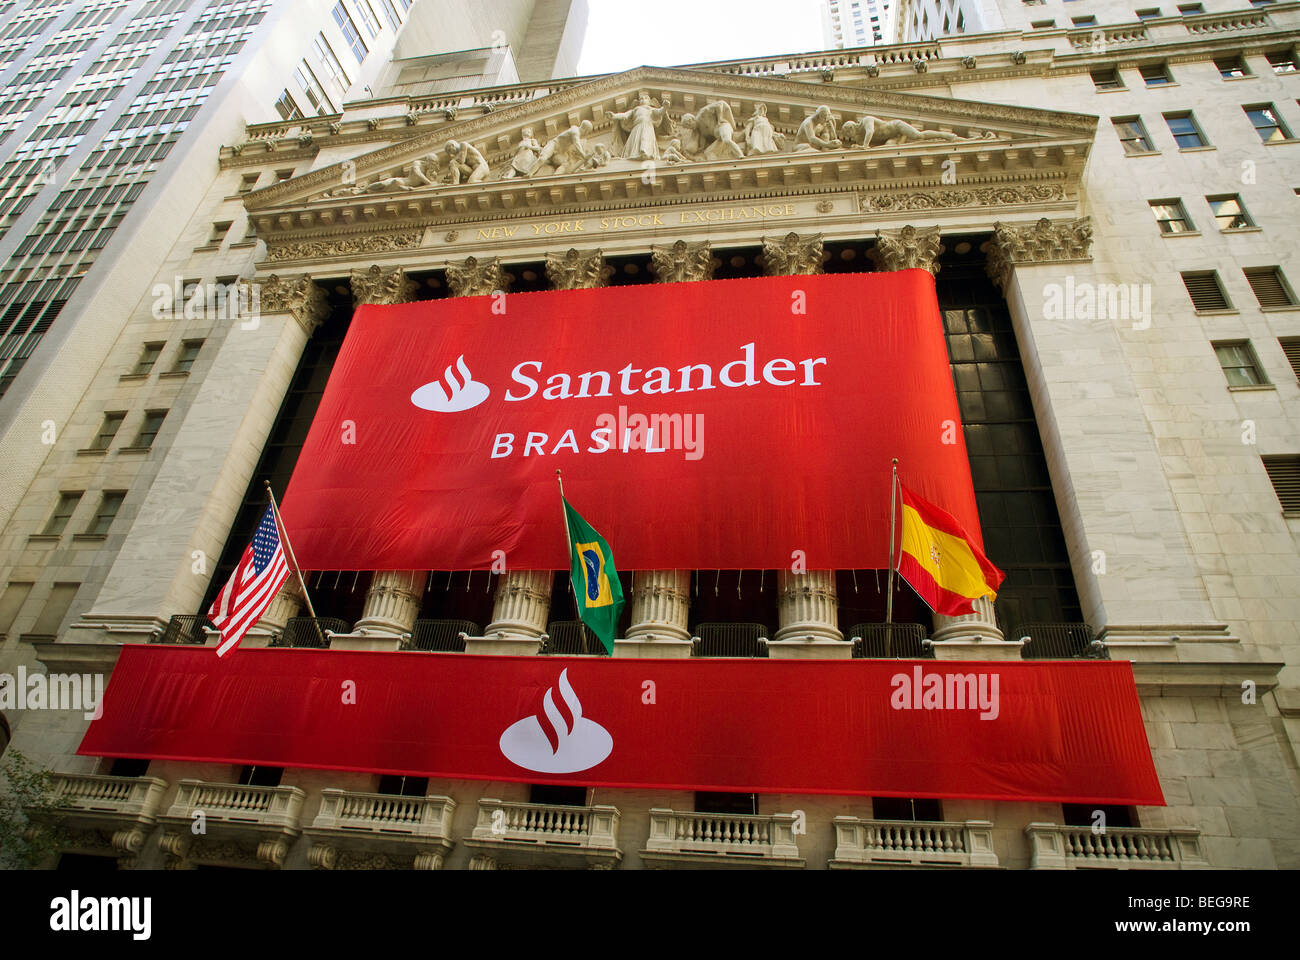 A Banner For Banco Santander Covers The Facade Of The New York Stock Exchange Stock Photo Alamy